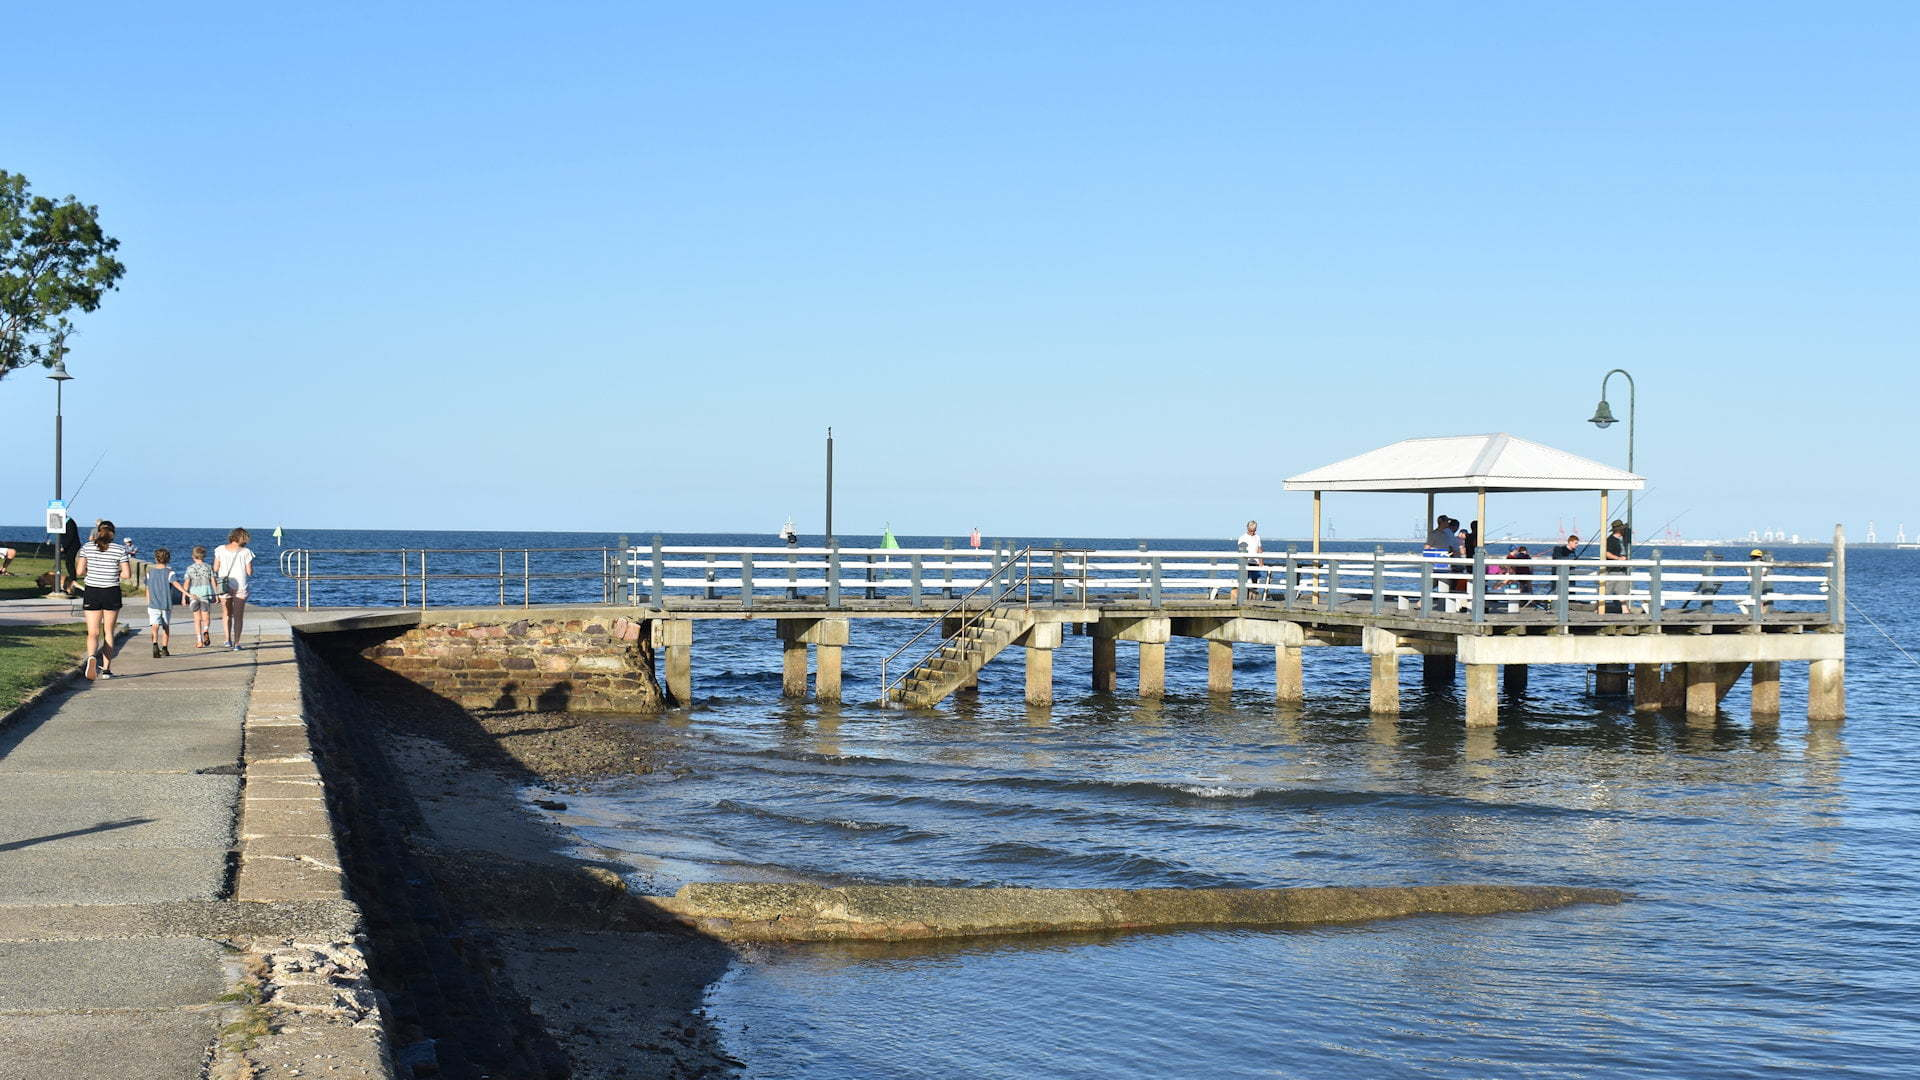 Jetty with fishermen, path along foreshore, taken at Baxters Jetty in Shorncliffe